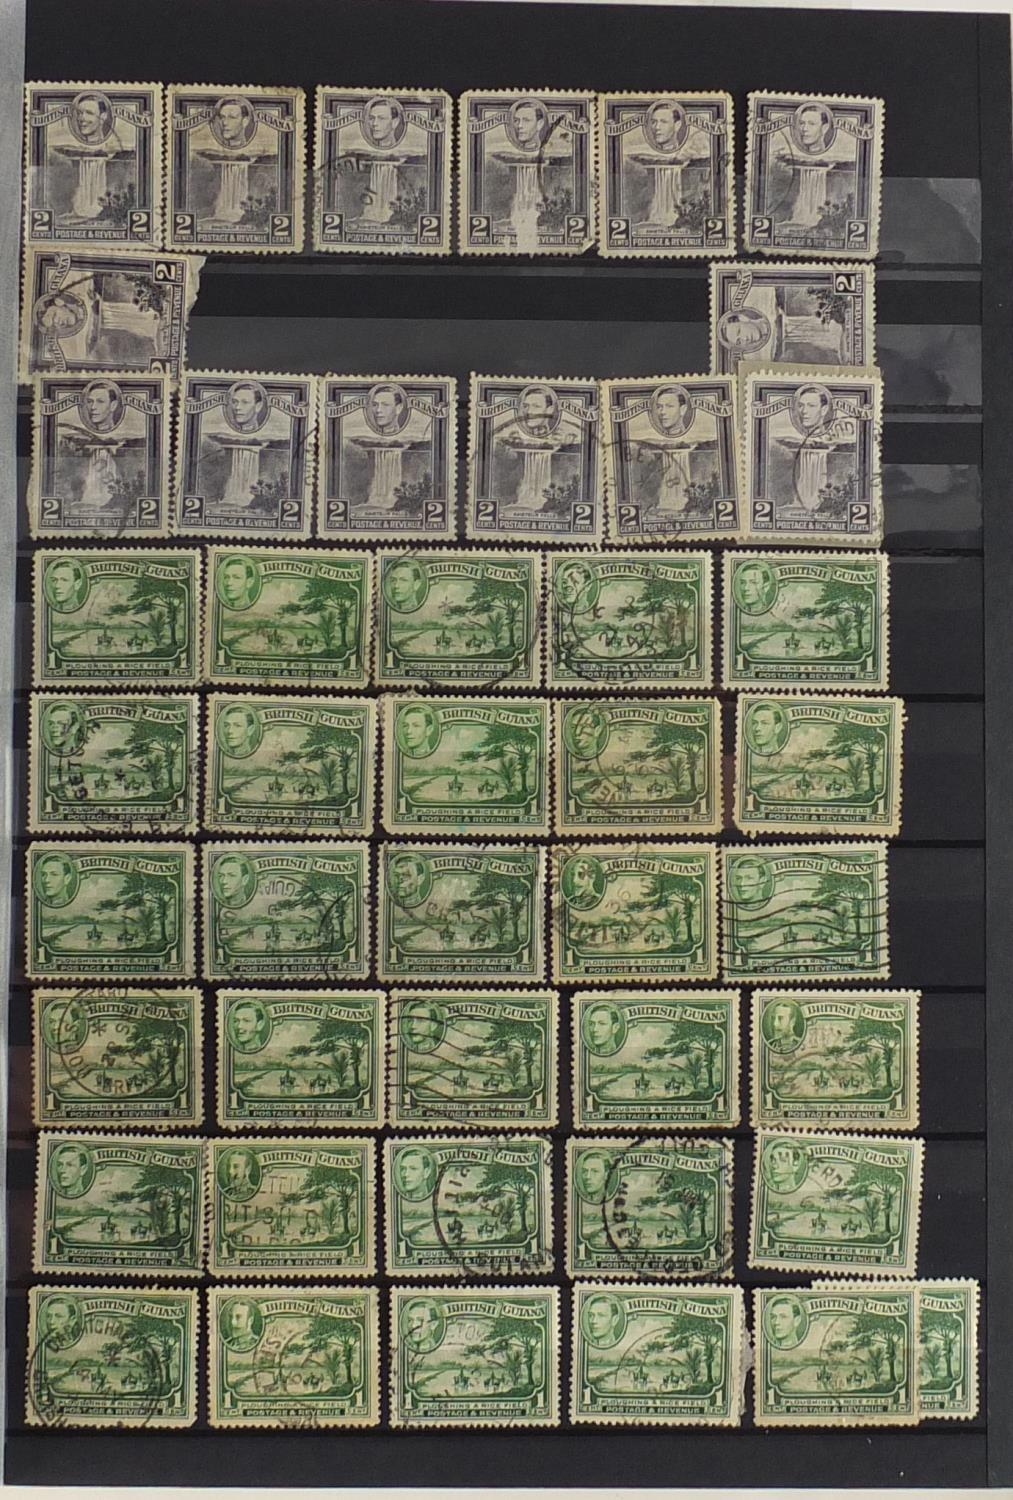 Lot 1066 - British and Commonwealth stamps arranged in an album, some mint unused : For Further Condition